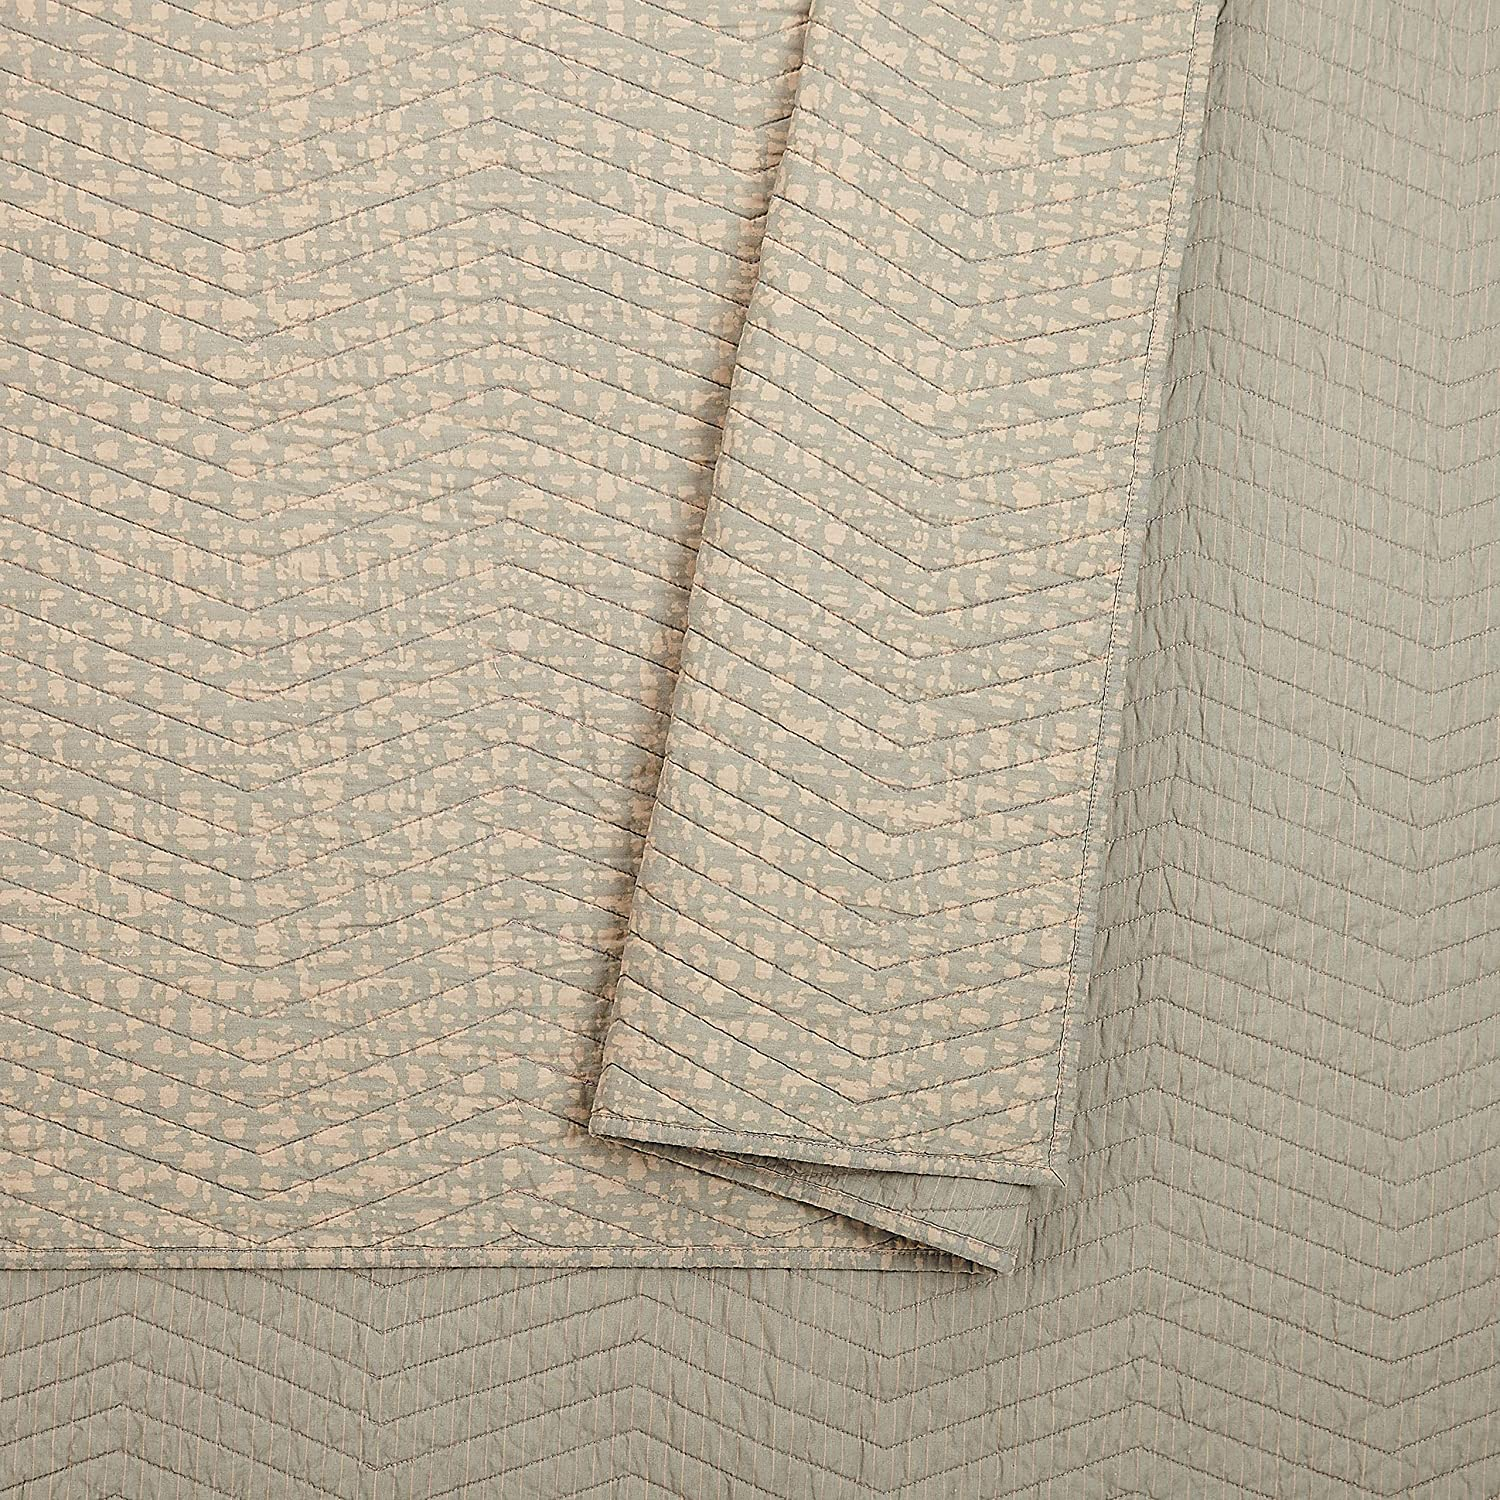 Ayesha Curry Abstract Texture Quilt Full Queen Taupe